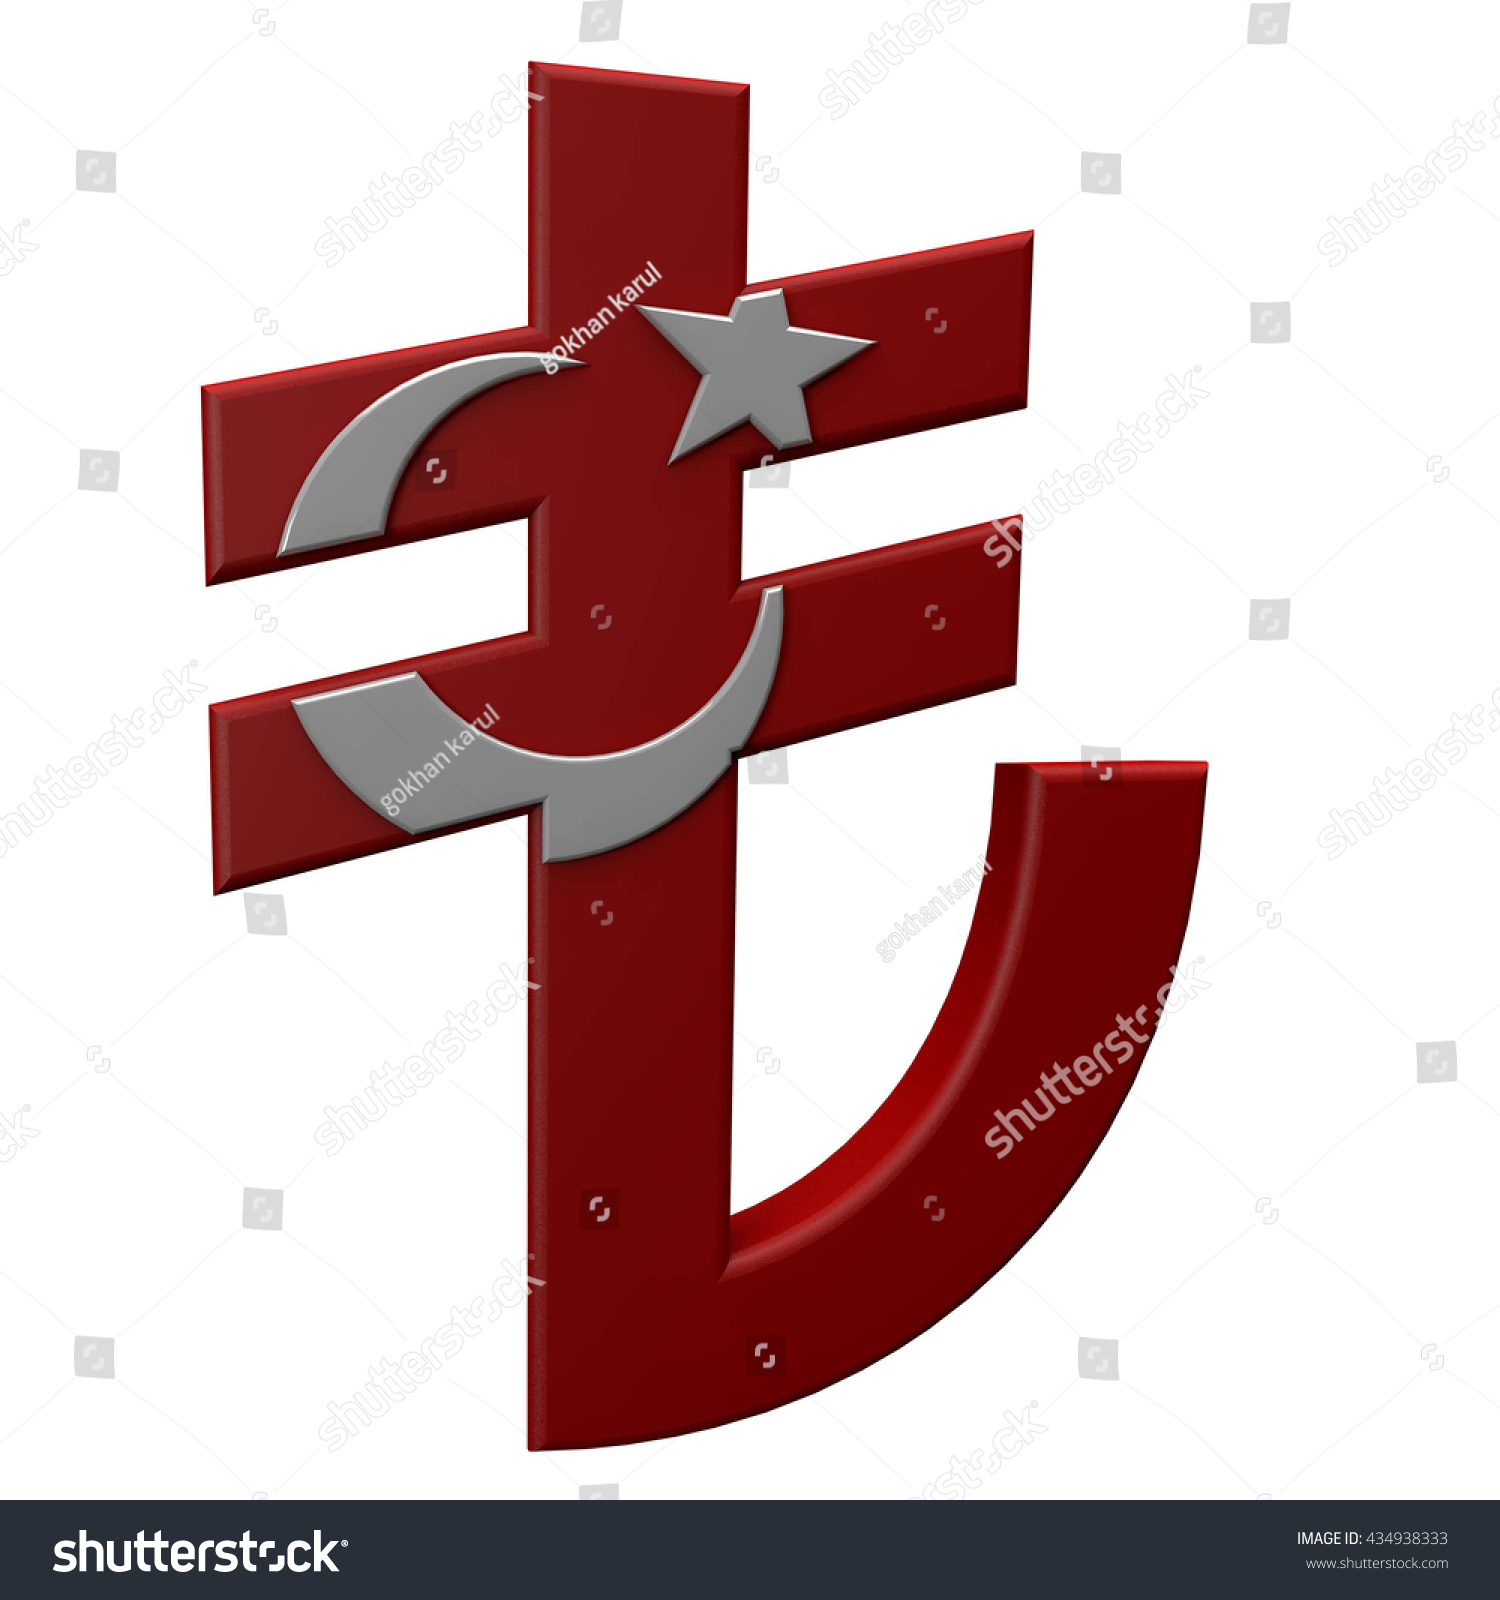 Currency symbol aed image collections symbols and meanings turkish currency symbol image collections symbol and sign ideas turkish lira currency symbol 3d tl stock buycottarizona Gallery